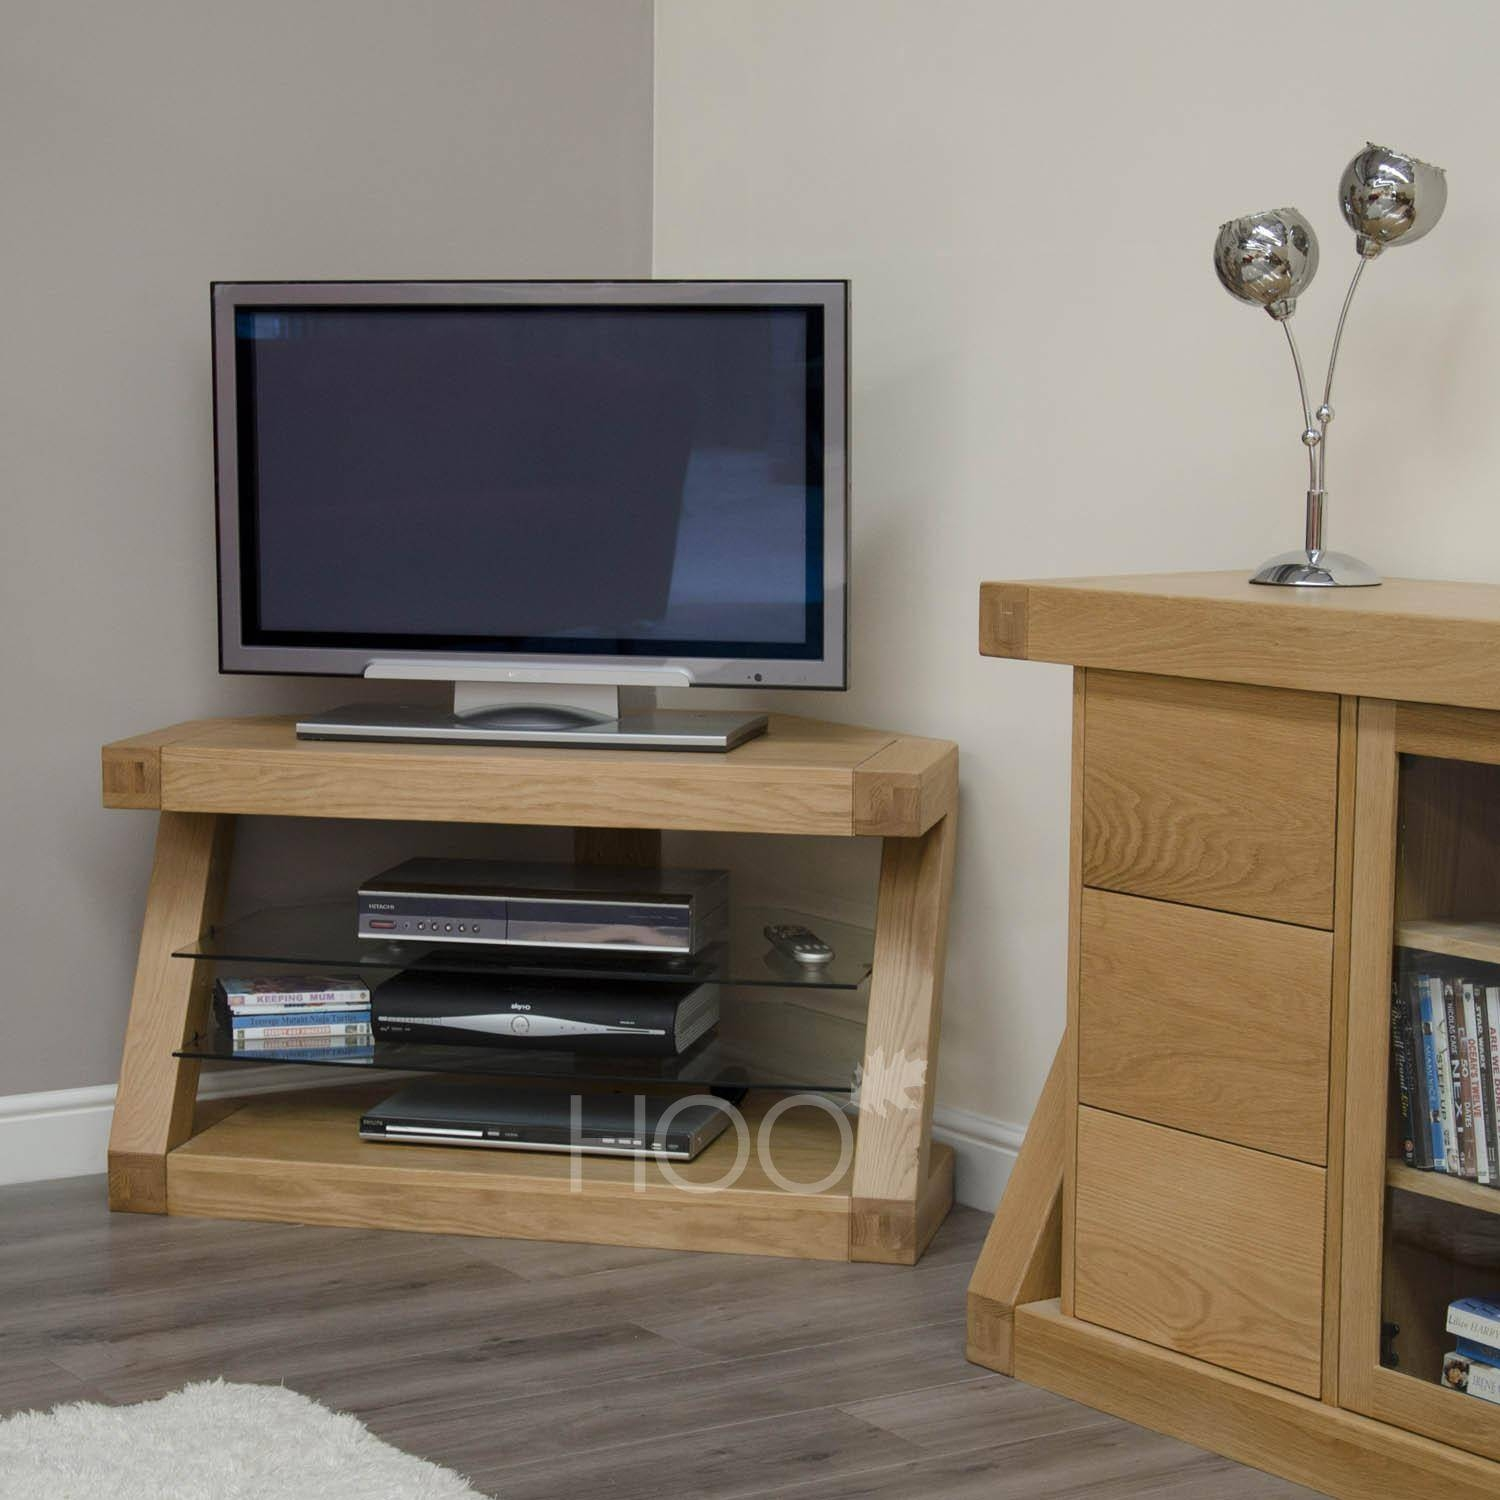 Tv Units - Oak Living Room Furniture - Oak Furniturehouse Of Oak in Low Corner Tv Cabinets (Image 14 of 15)